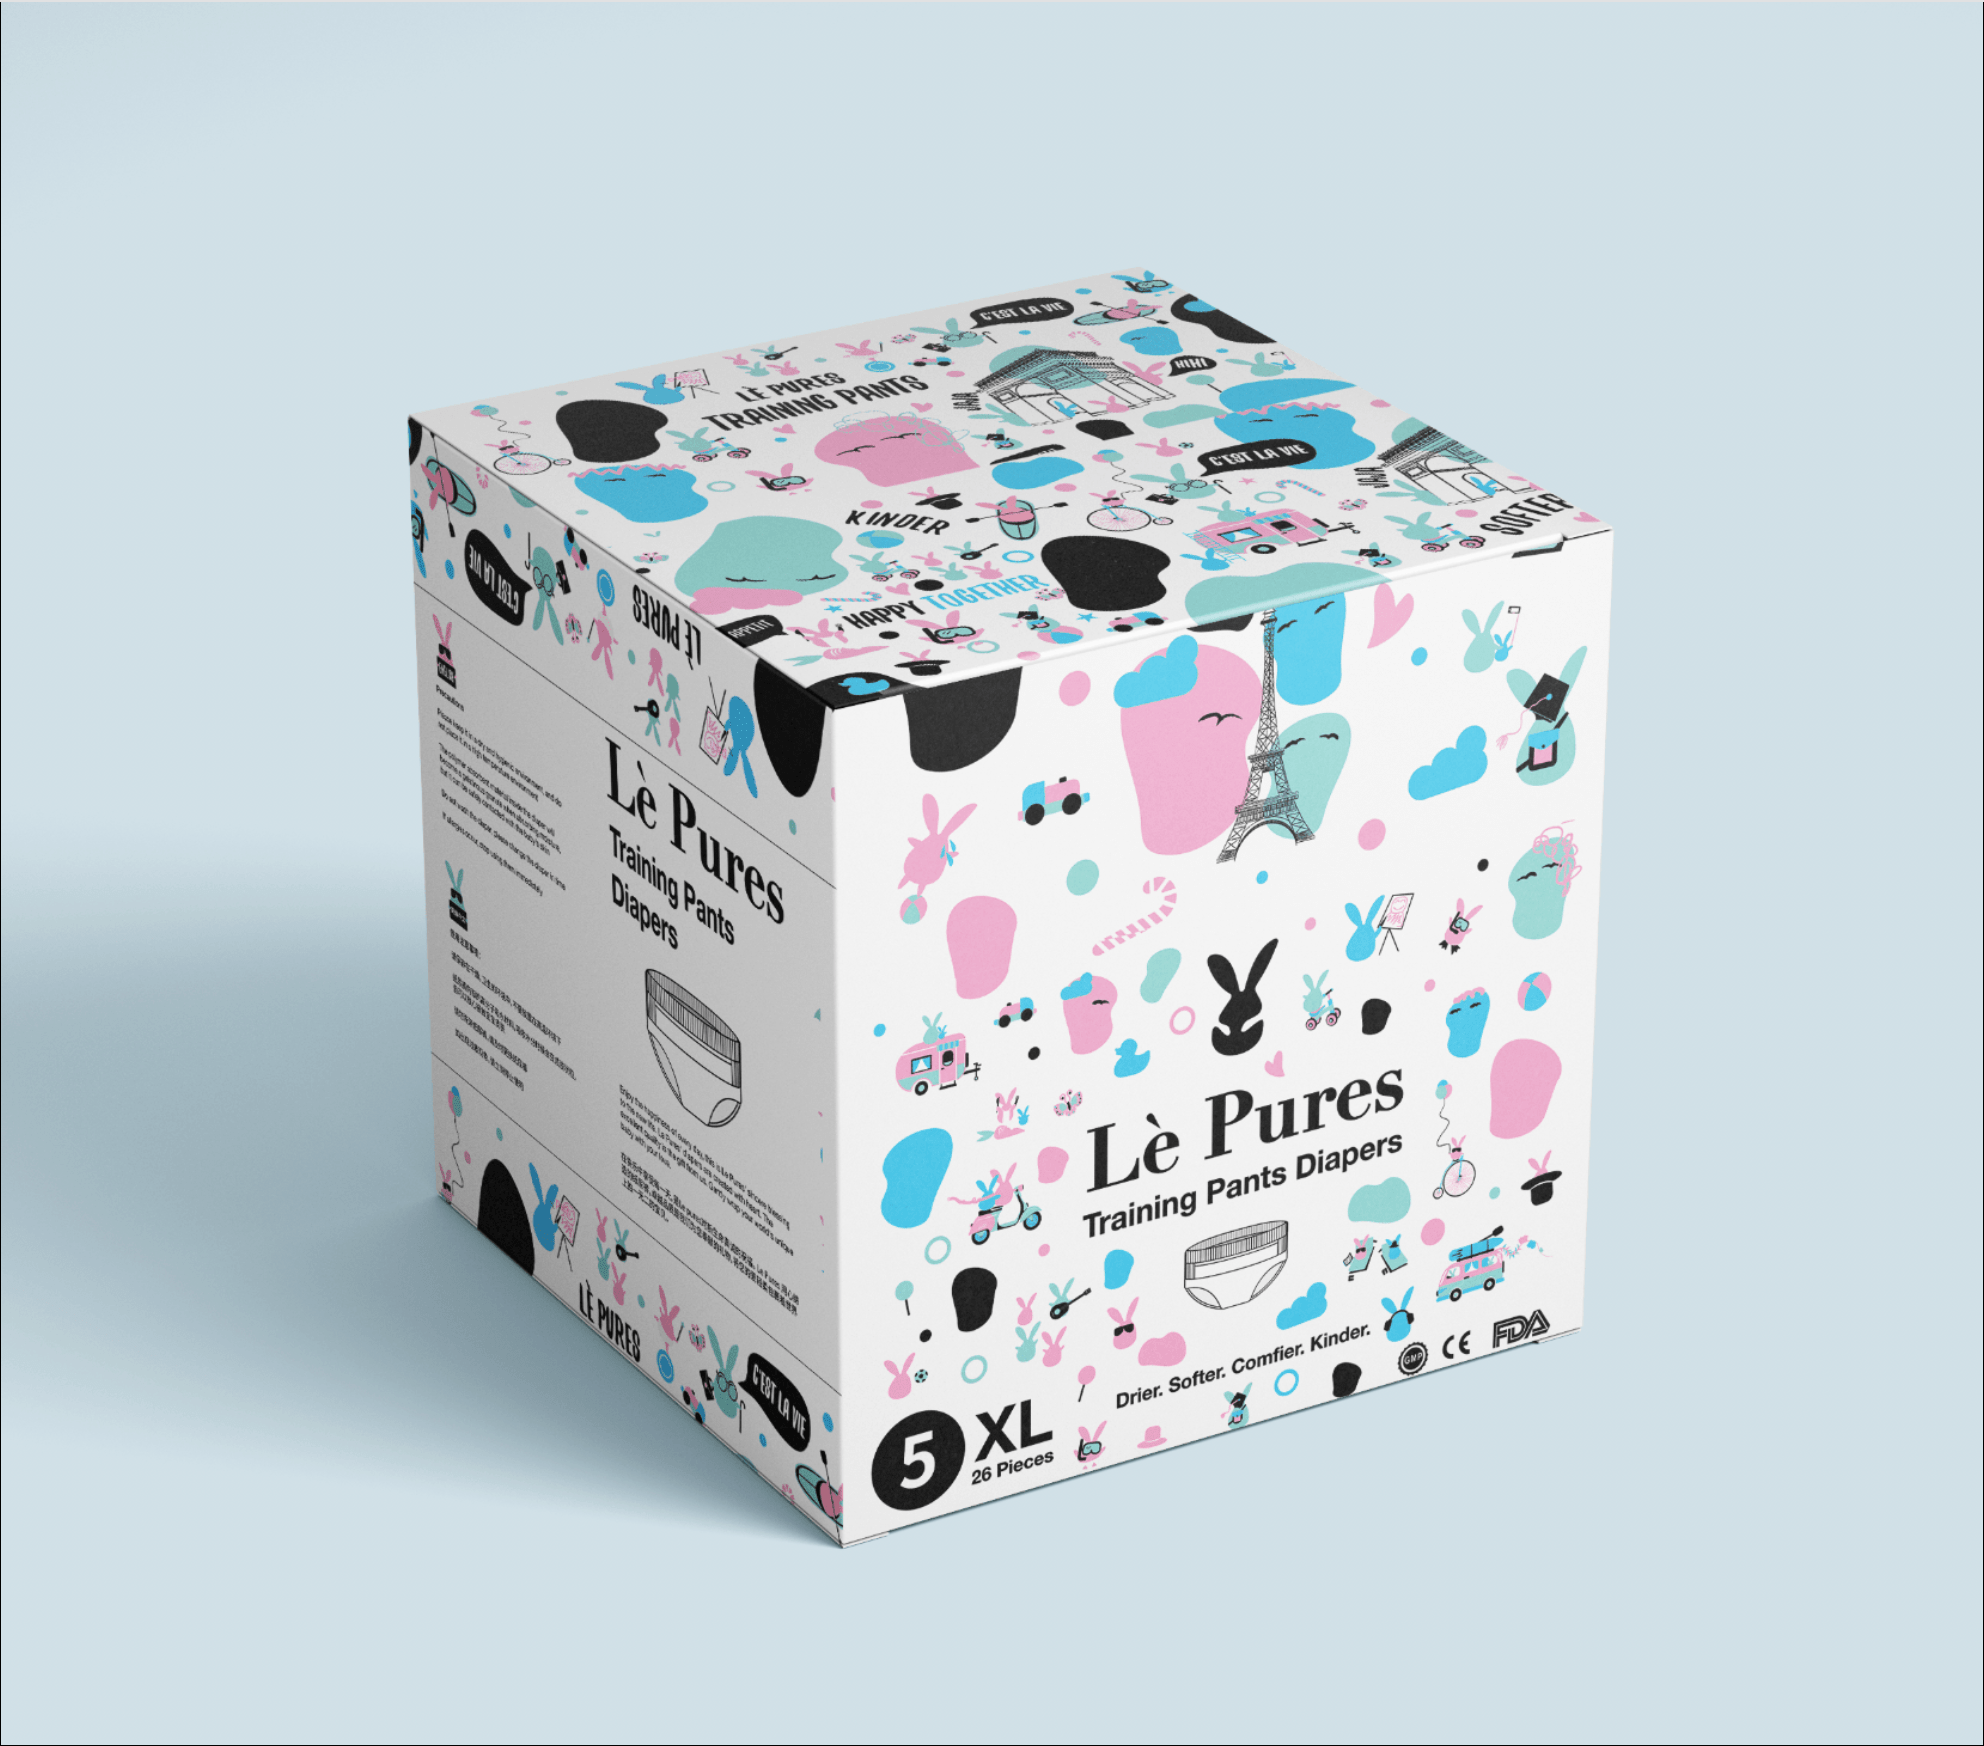 Le Pures Packaging